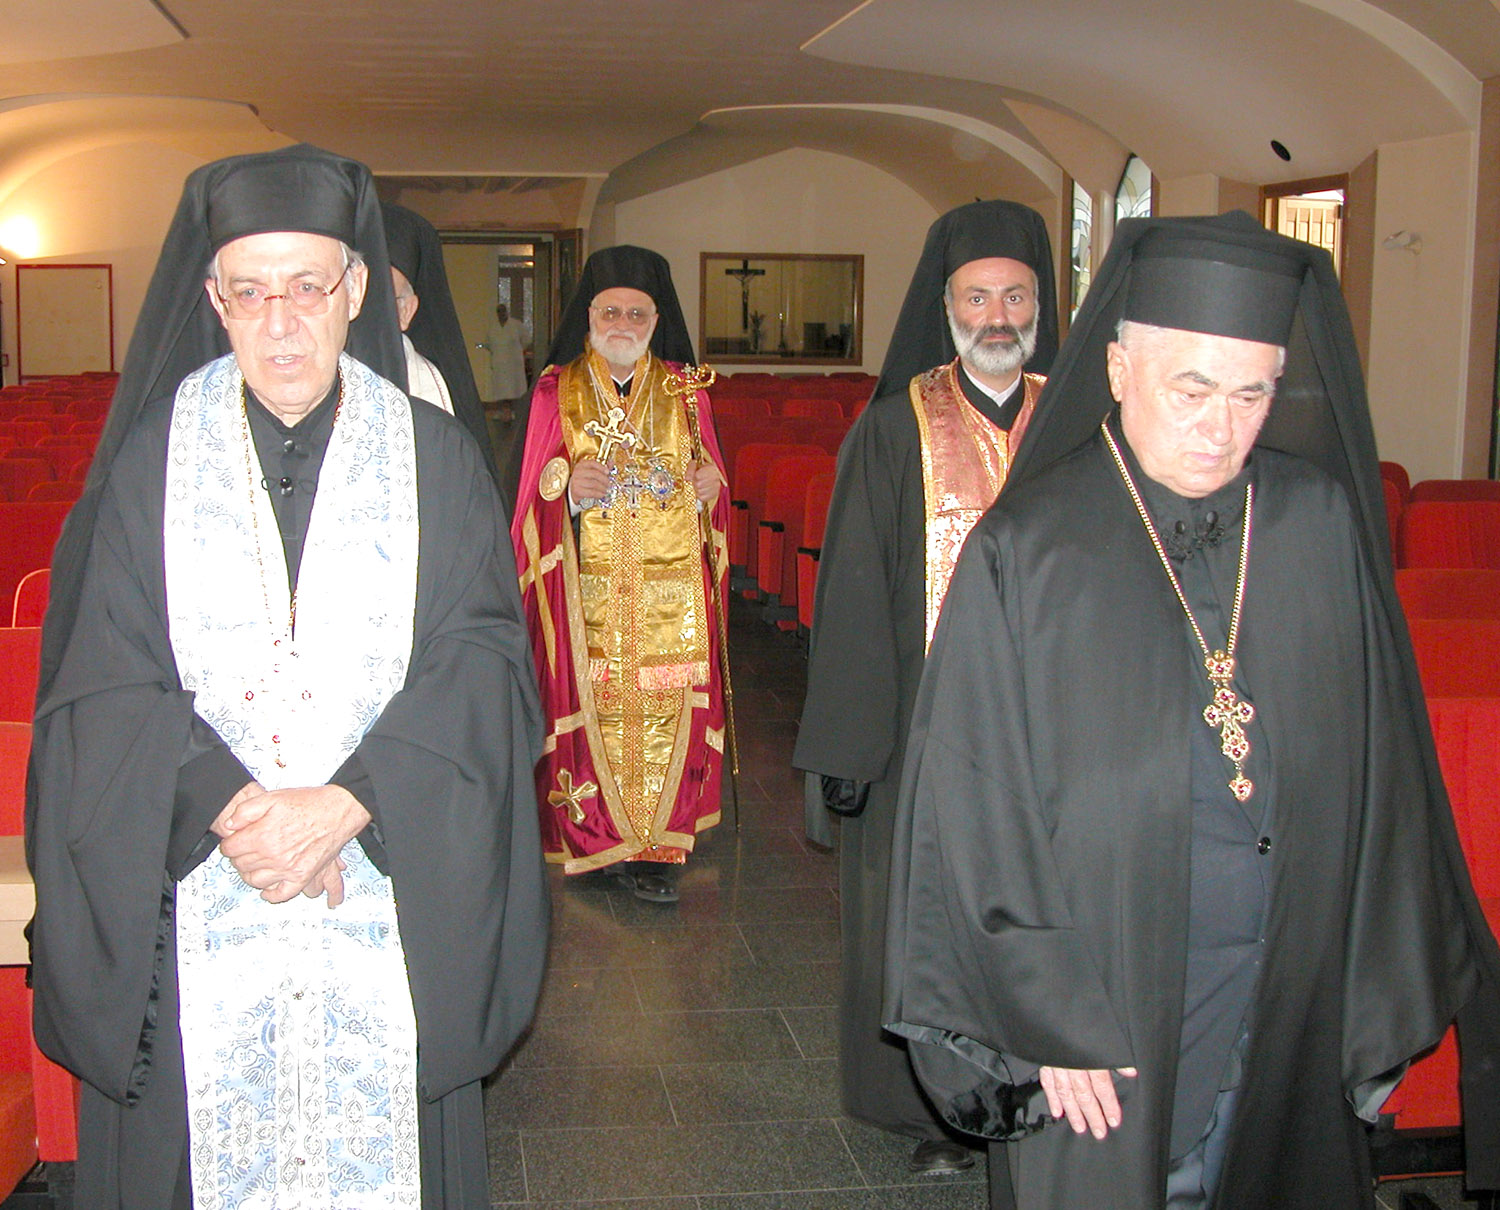 Melkite Patriarch Gregory III with some Archimadrites